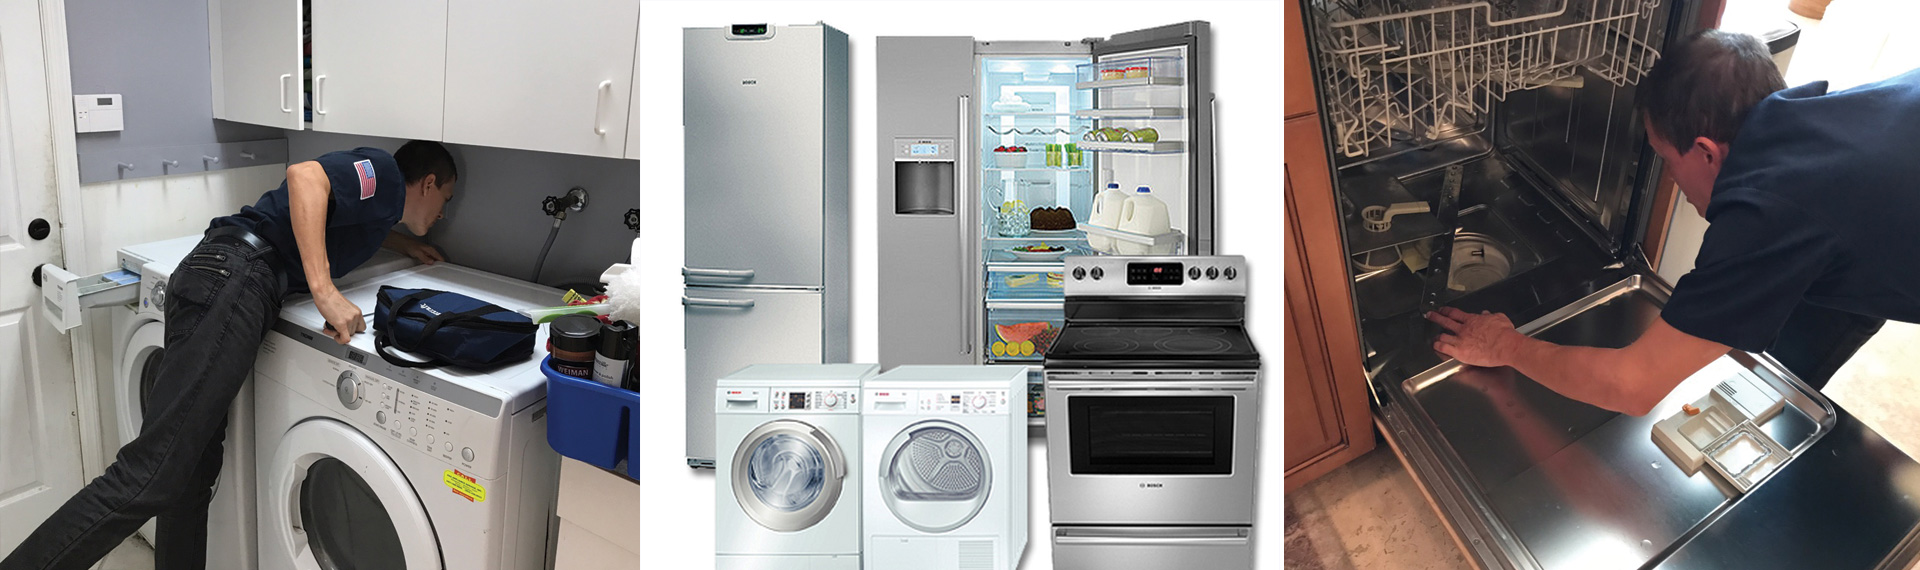 Samsung, Kenmore, Whirlpool, Hot Point, LG, Admiral, Maytag appliances